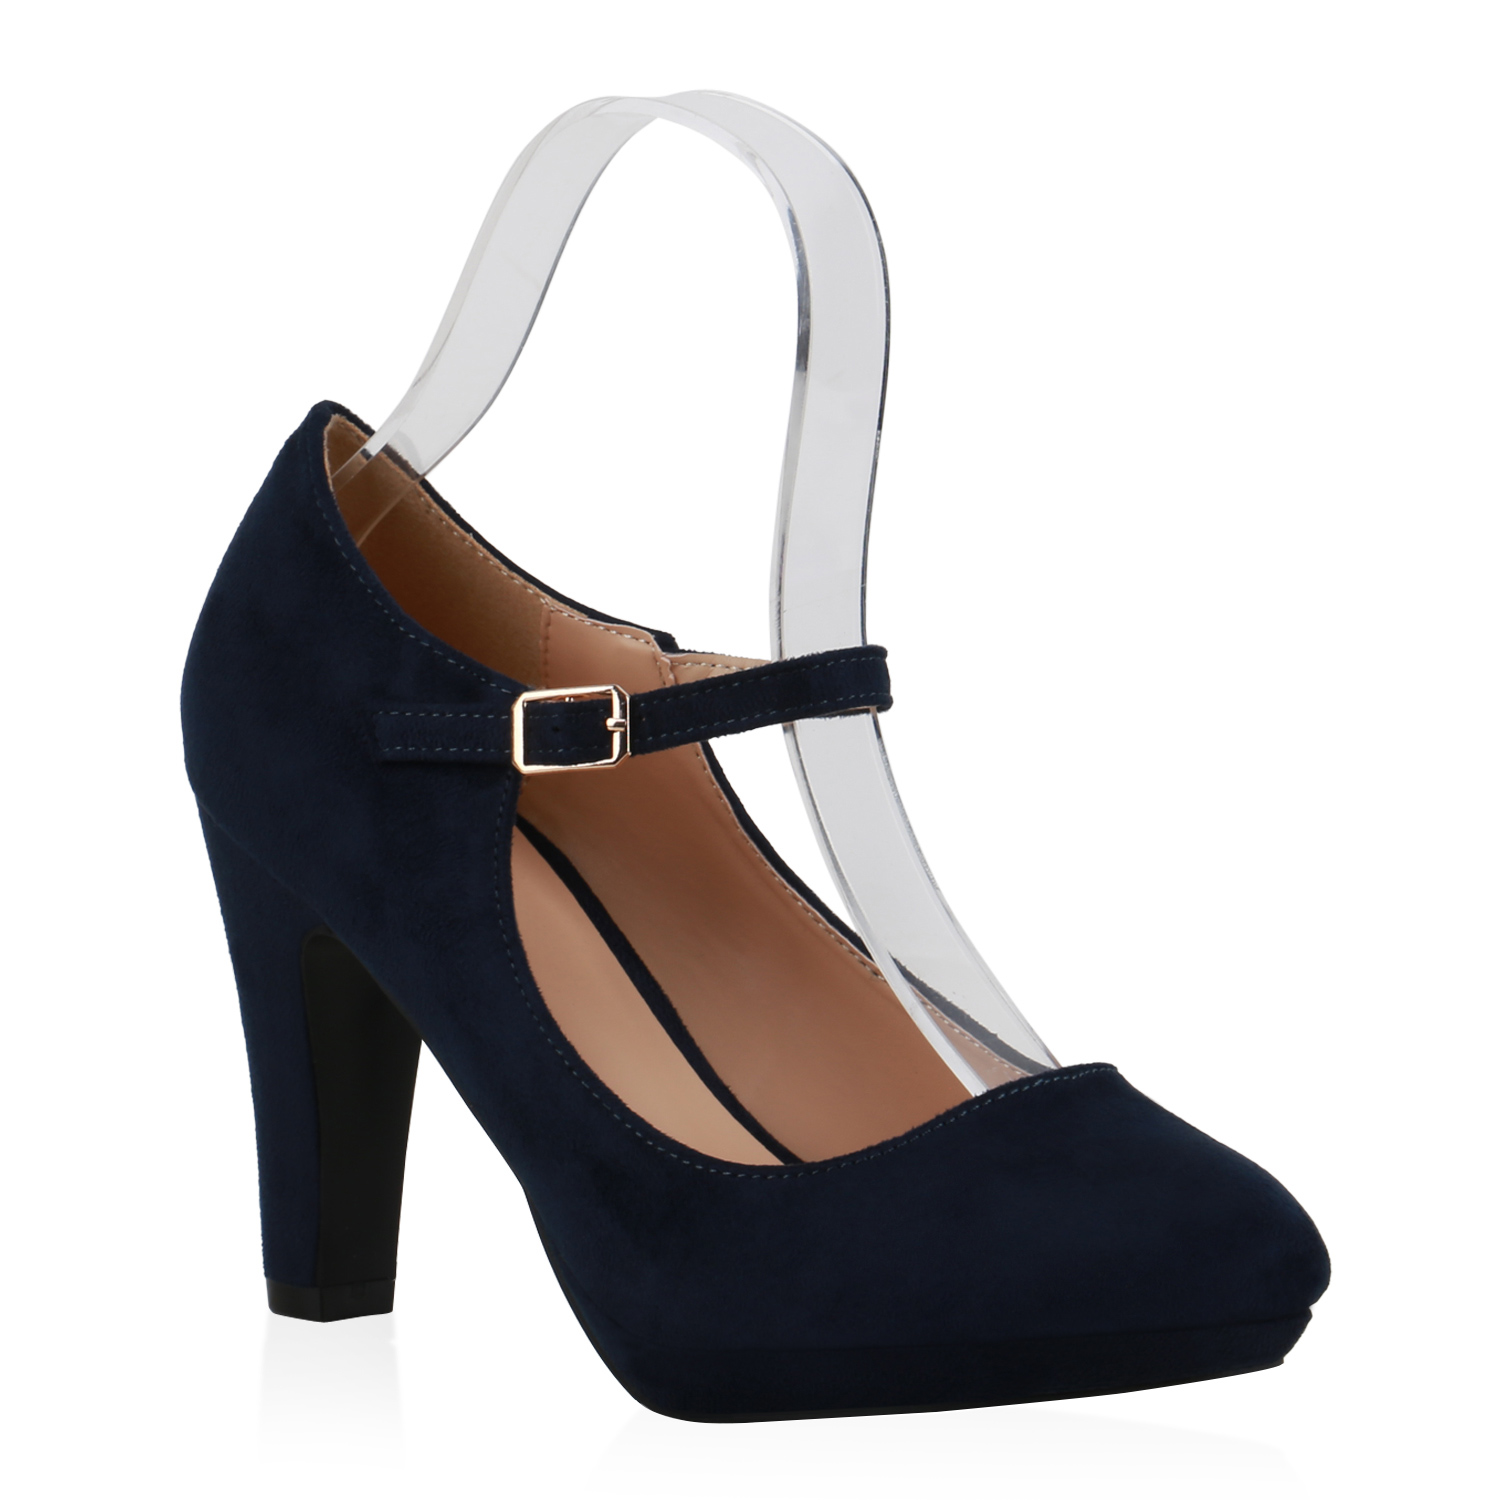 Damen Pumps Mary Janes - Dunkelblau